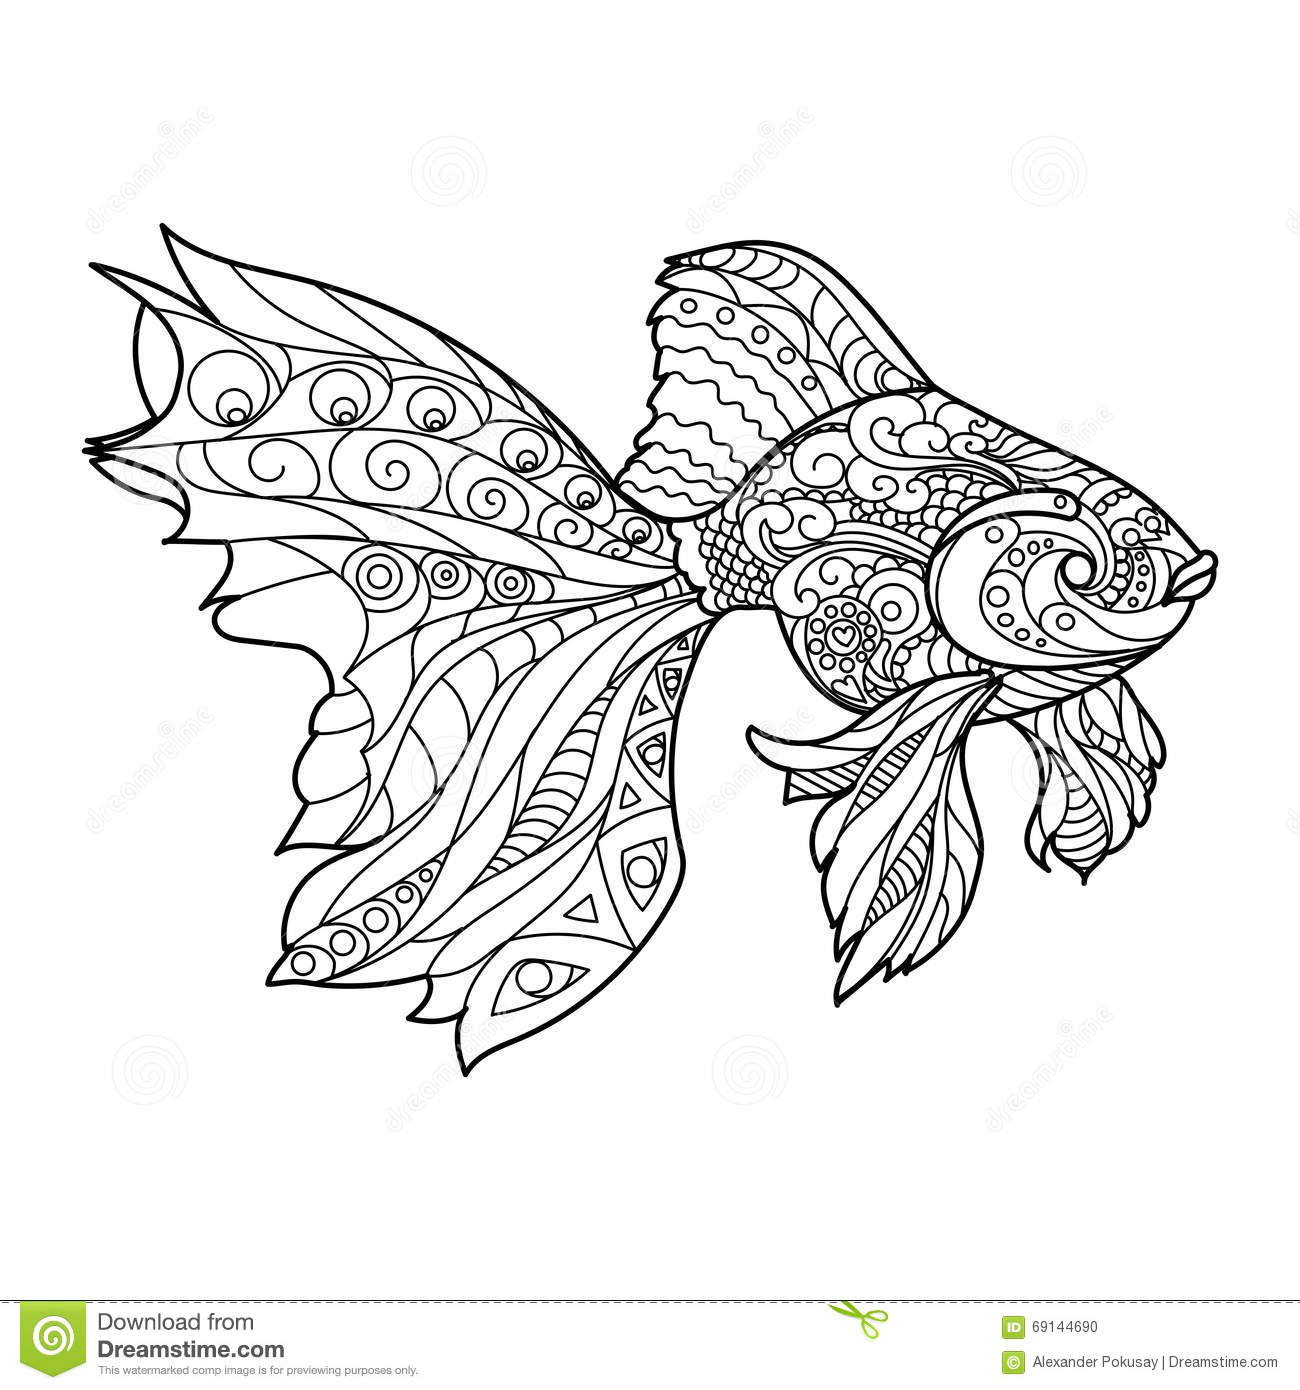 royalty free vector download gold fish coloring book for adults - Color Books For Adults